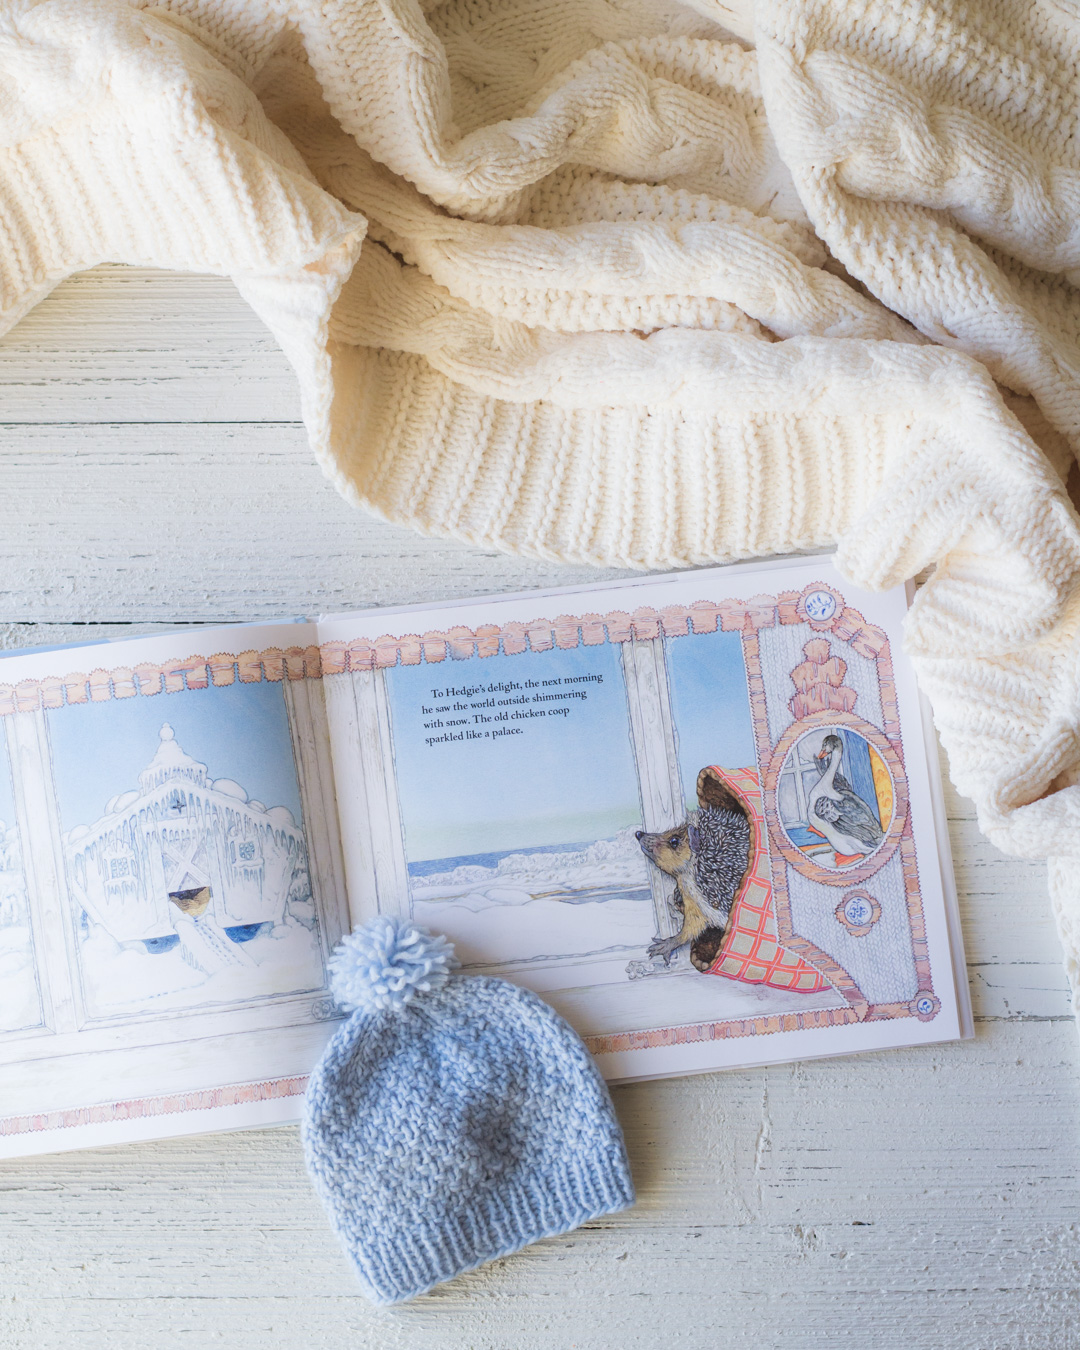 The Snowy Nap book on a wooden surface with a blanket and blue knit hat.